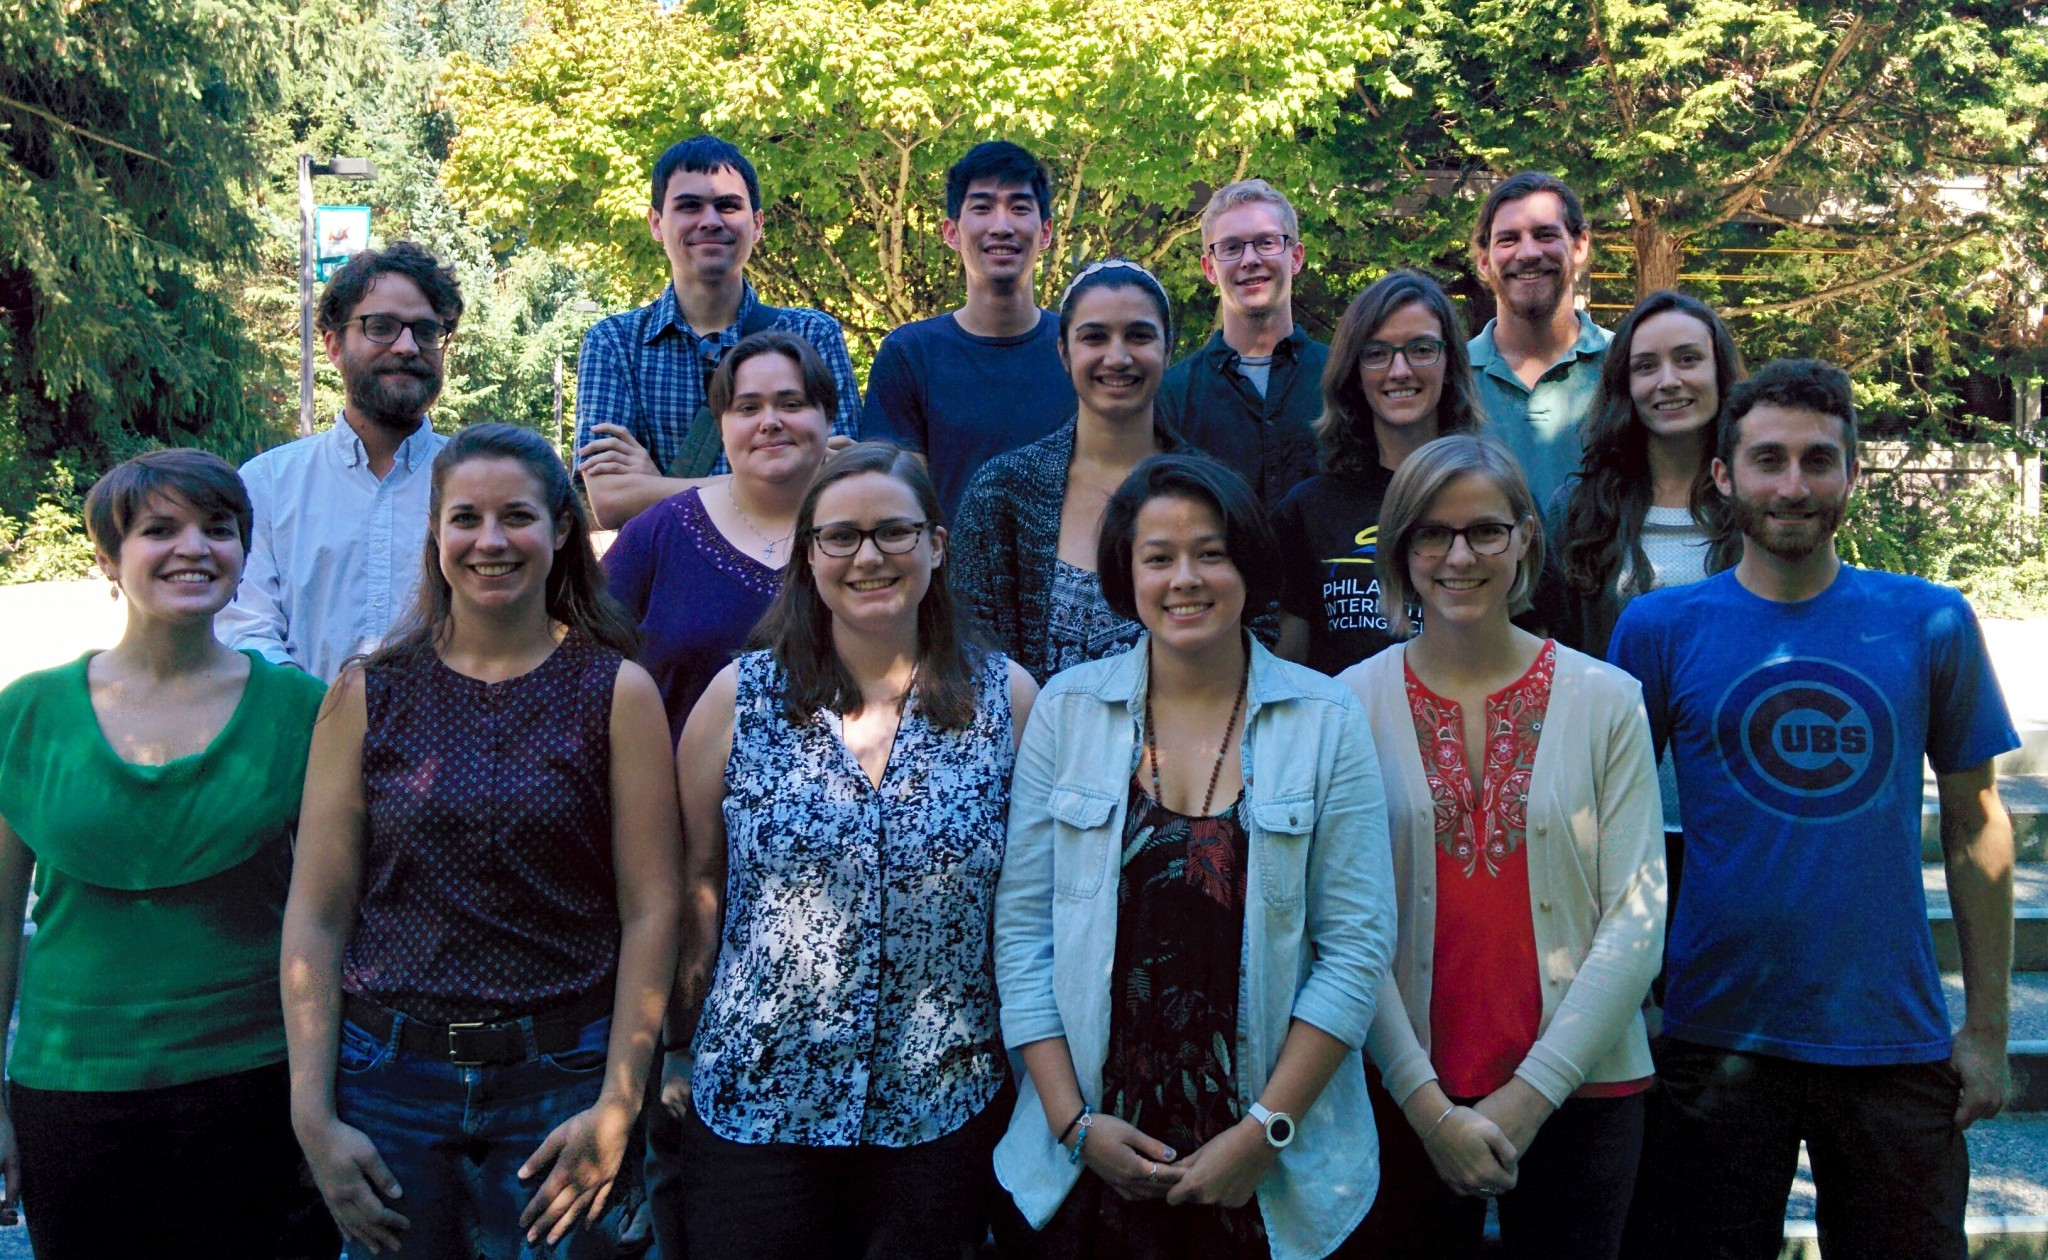 Lewis and Clark Fund for Exploration and Field Research 2018 (Grants up to $5,000)